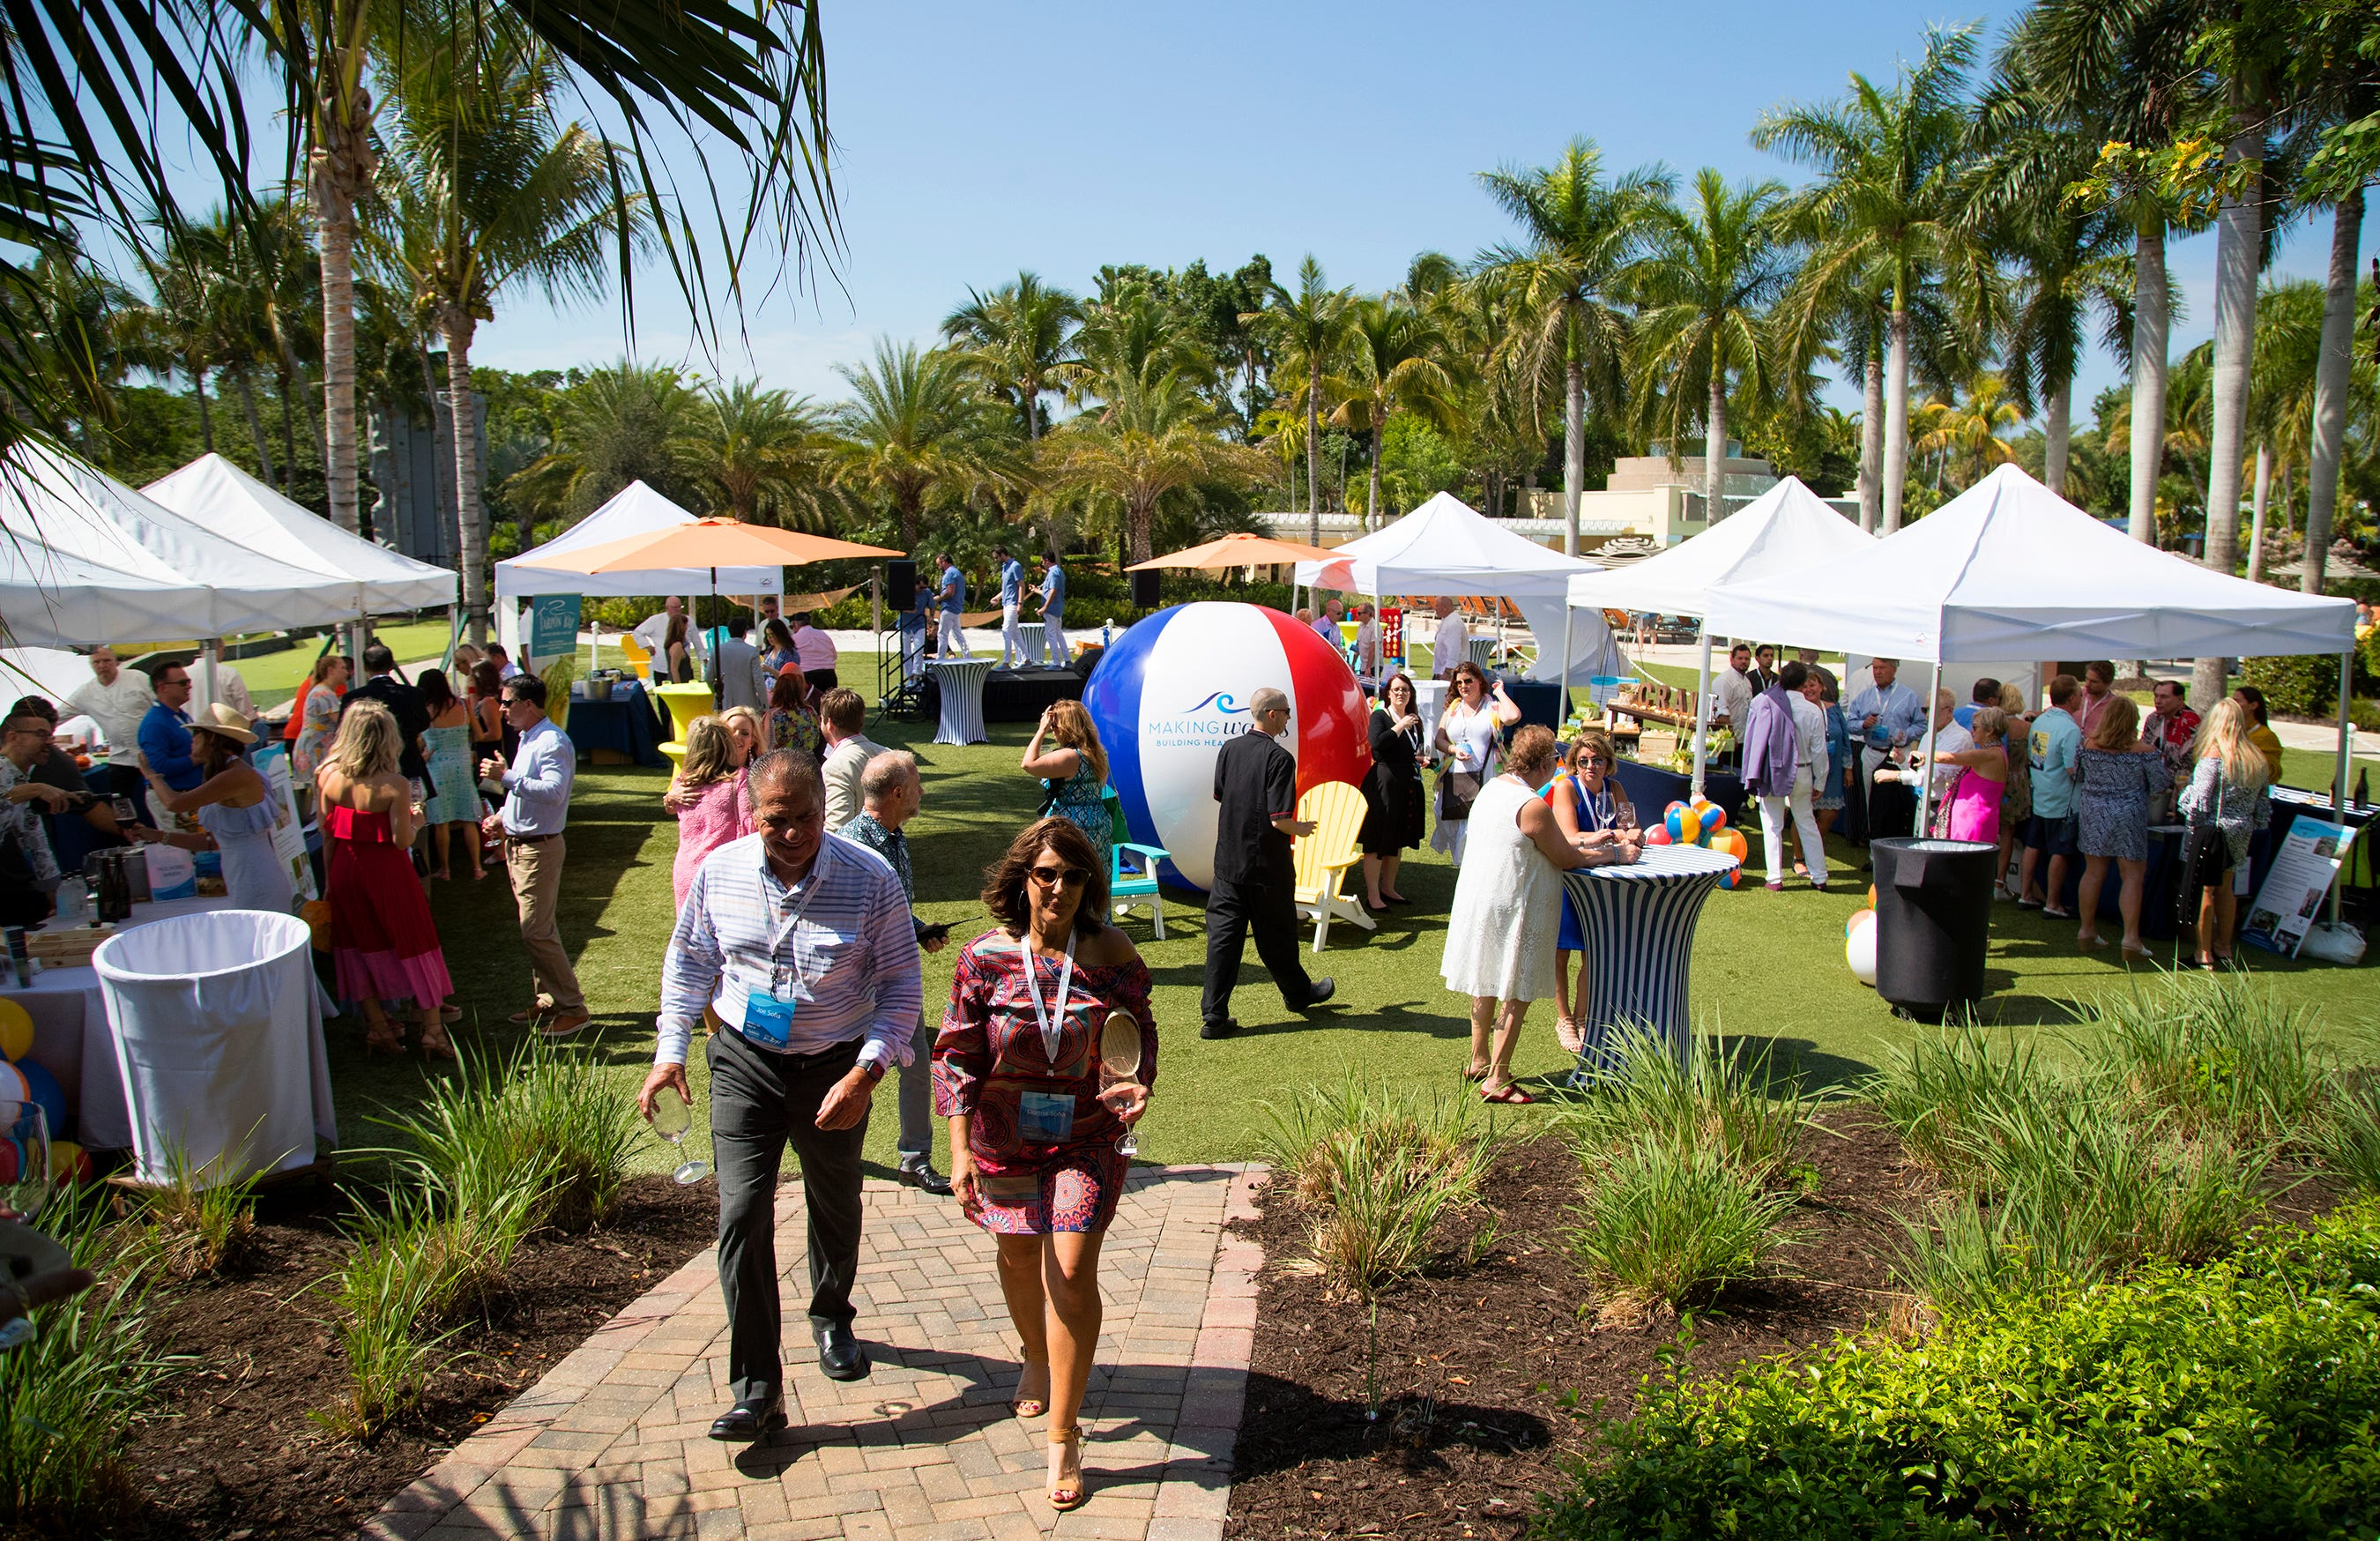 The Southwest Florida Wine & Food Fest was held at the Hyatt Regency Coconut Point Resort in Bonita Springs. The annual event supports programs addressing children's mental and behavioral health needs.